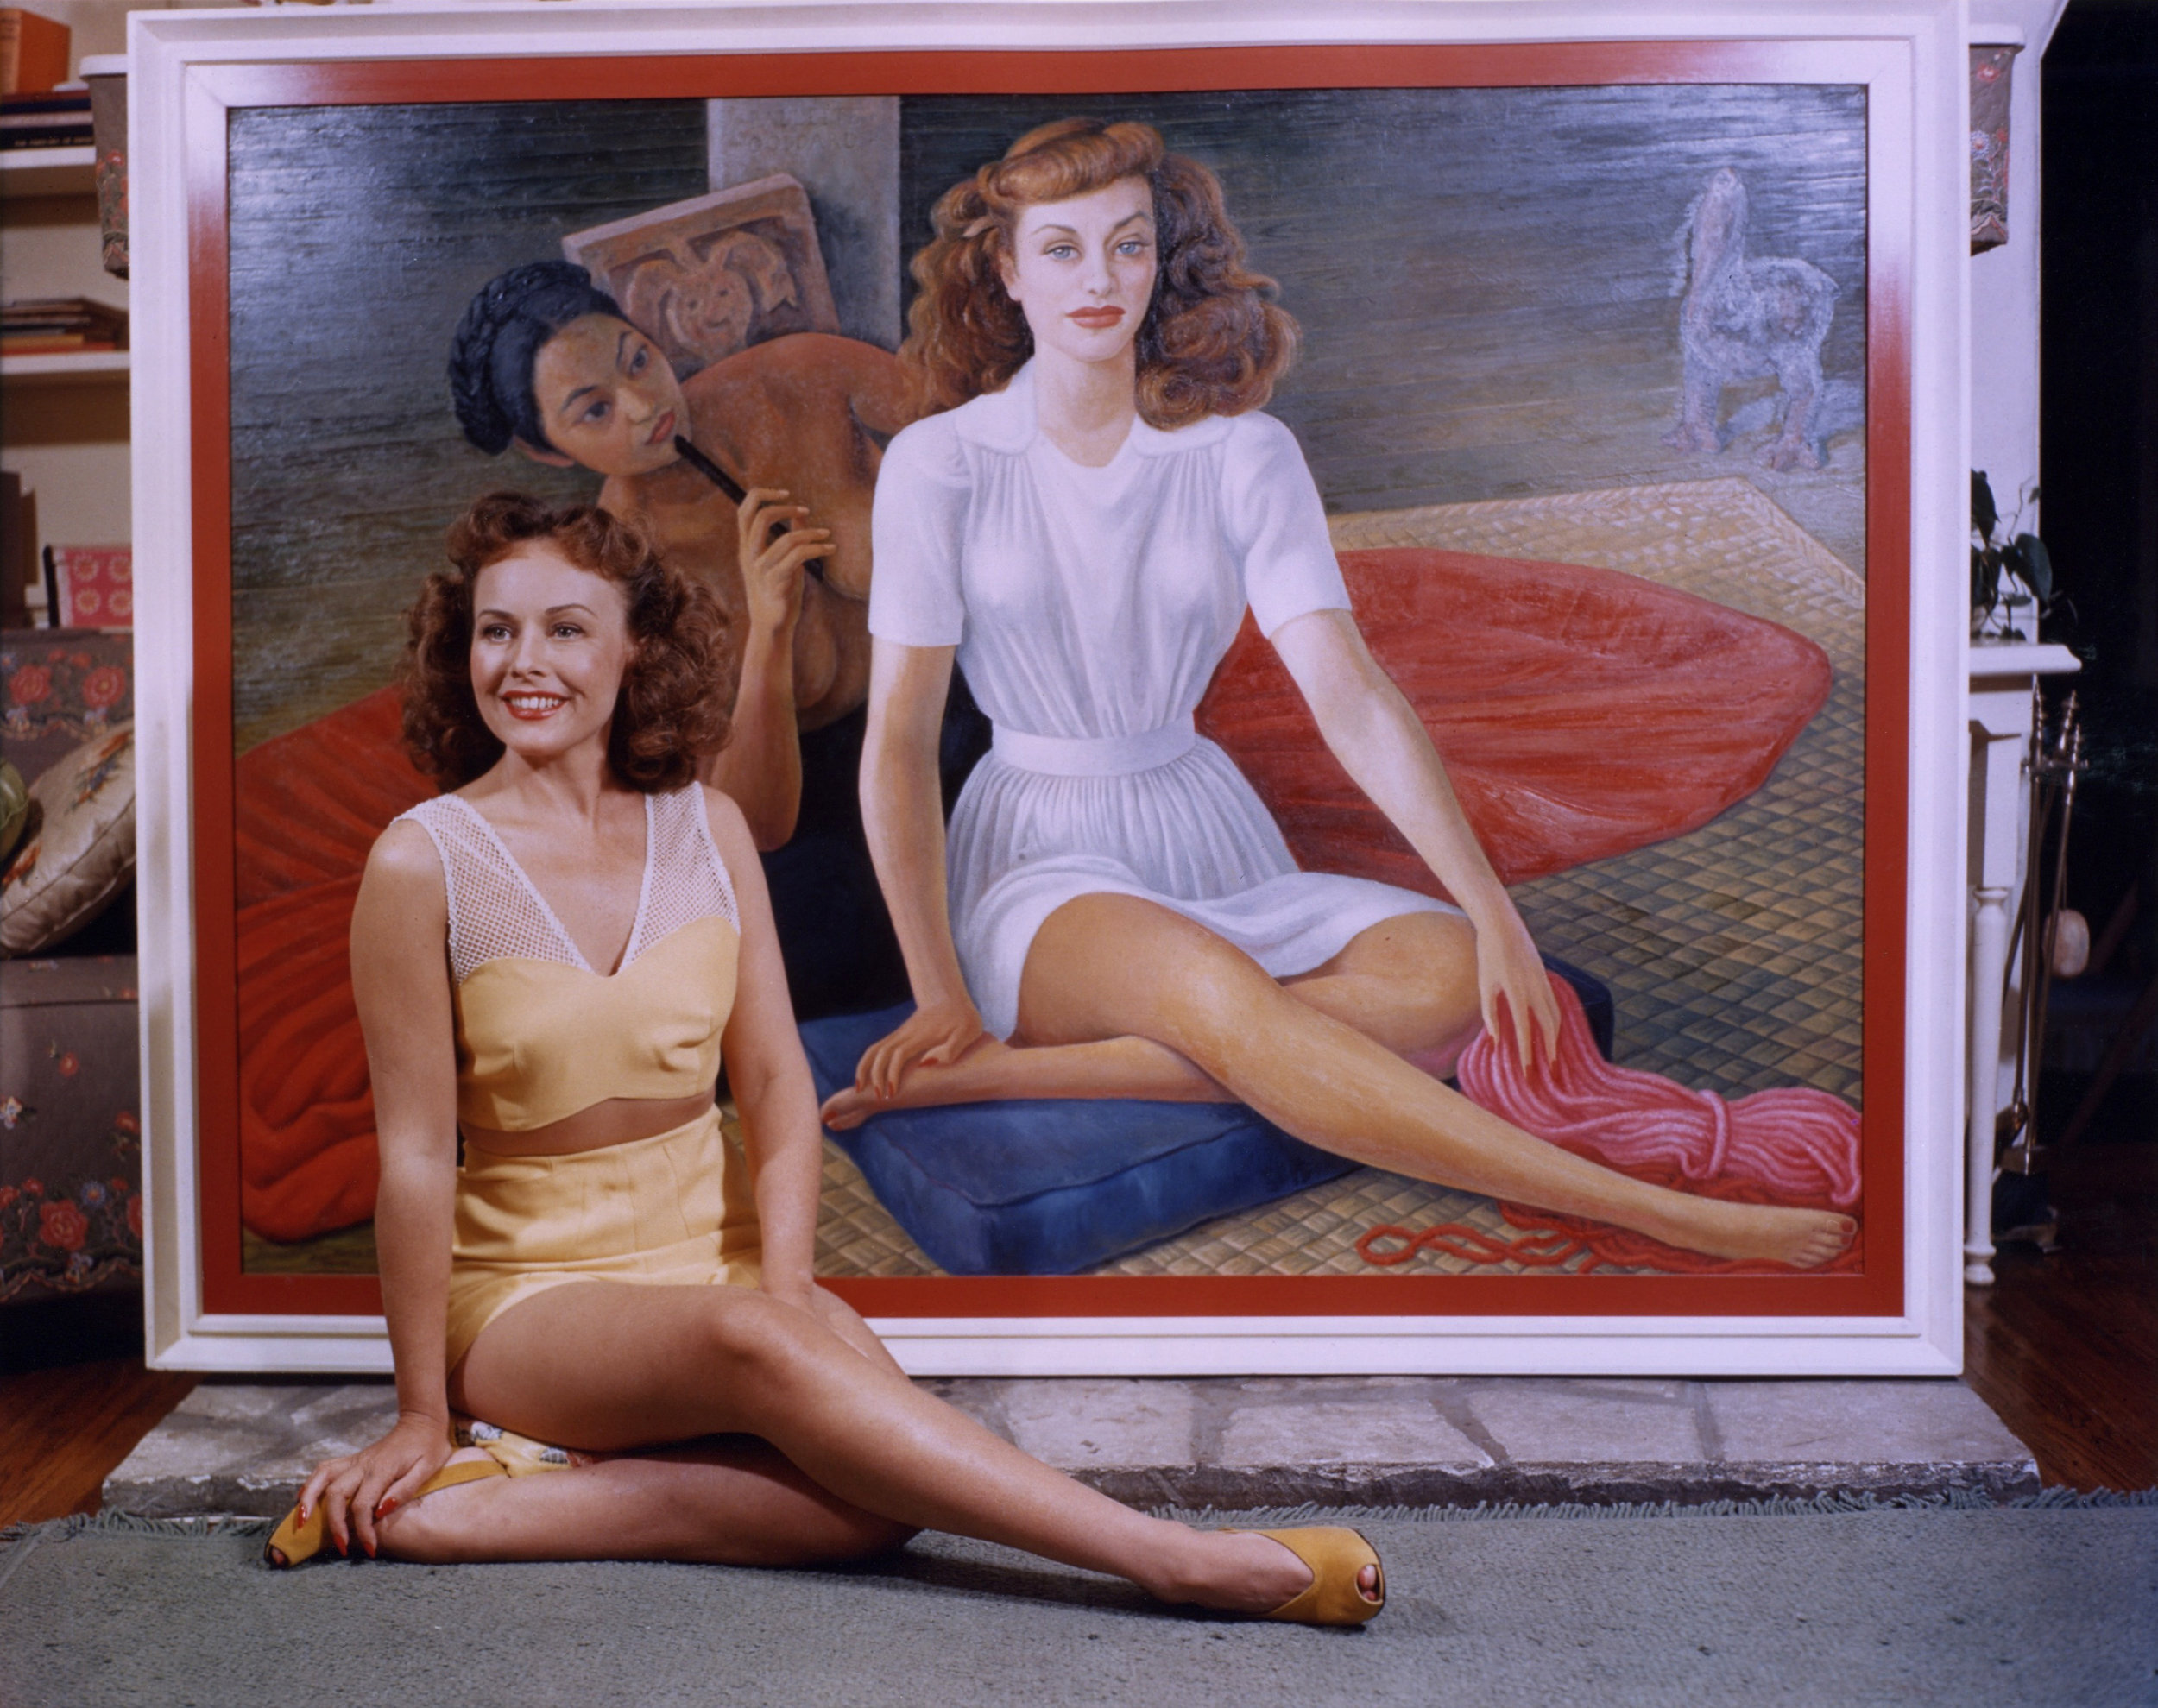 Paulette Goddard with Diego Rivera's portrait of her, executed 1940-41